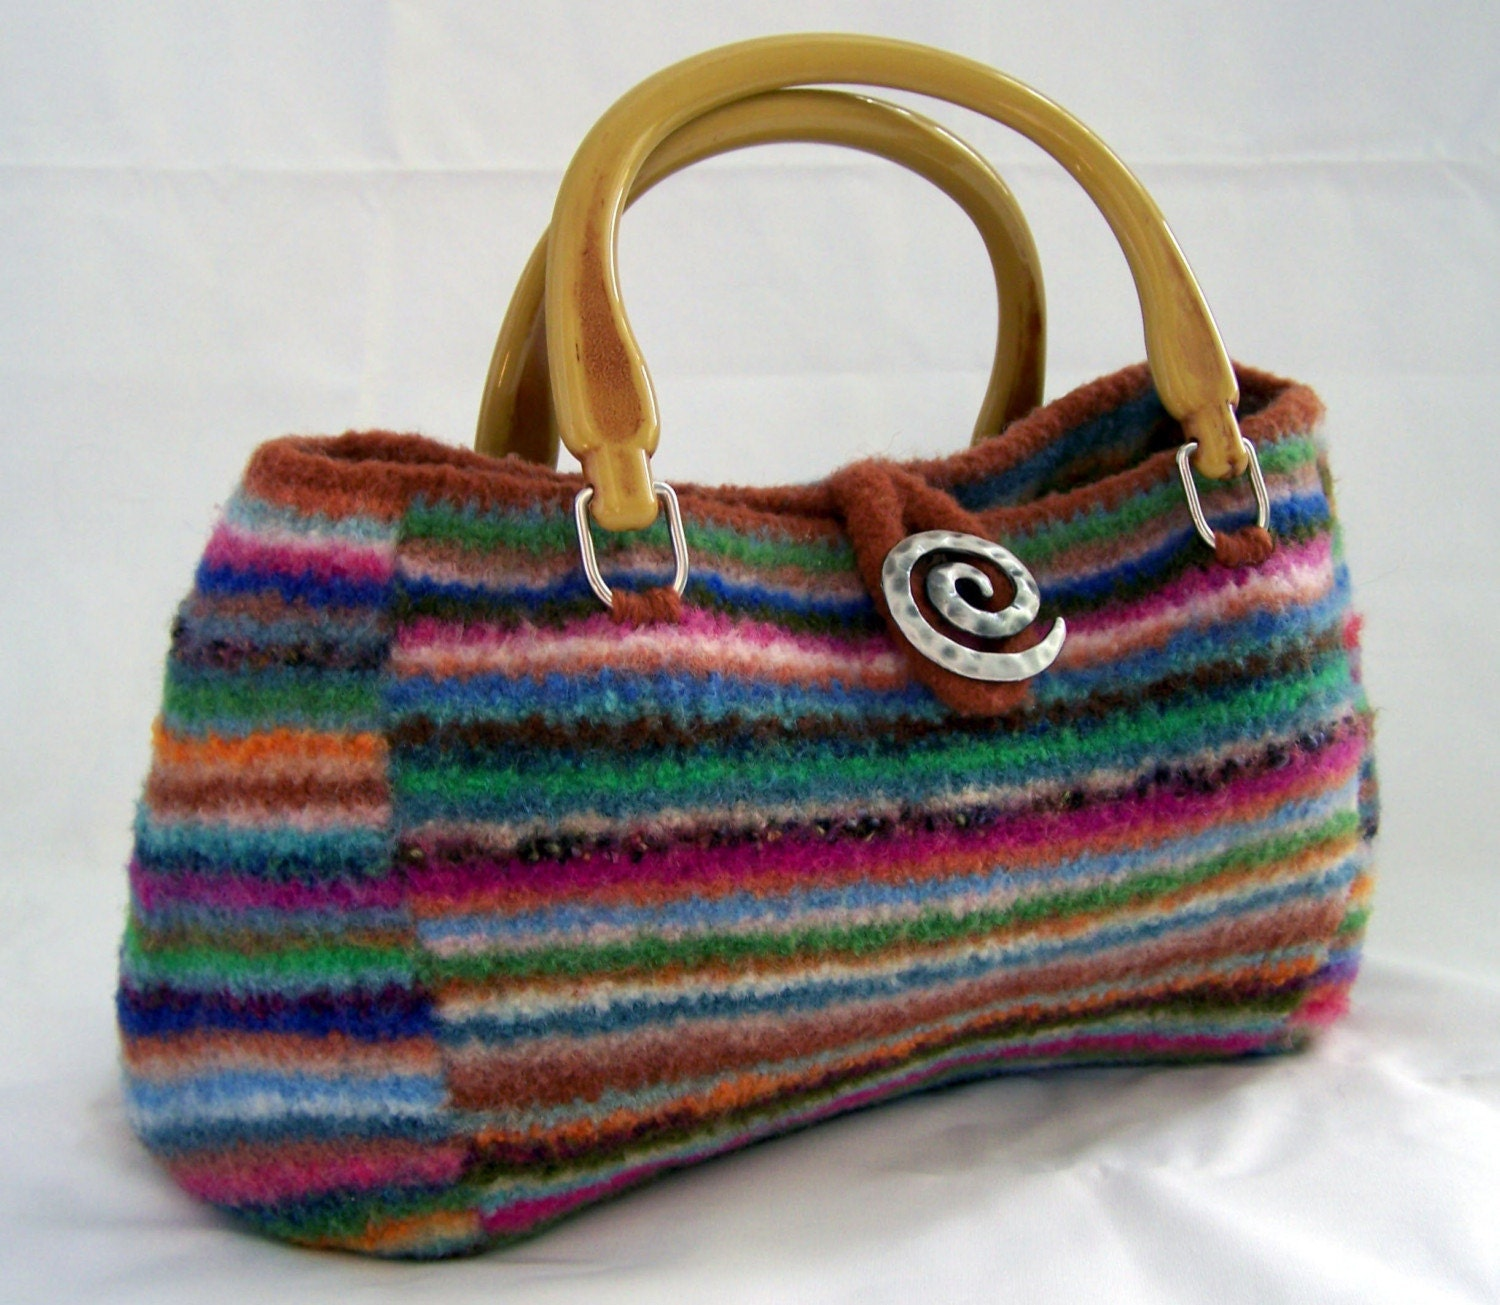 Knitted Handbags Patterns : Knitting PATTERN Felted Doctor Bag Purse Satchel (PDF - instant ...